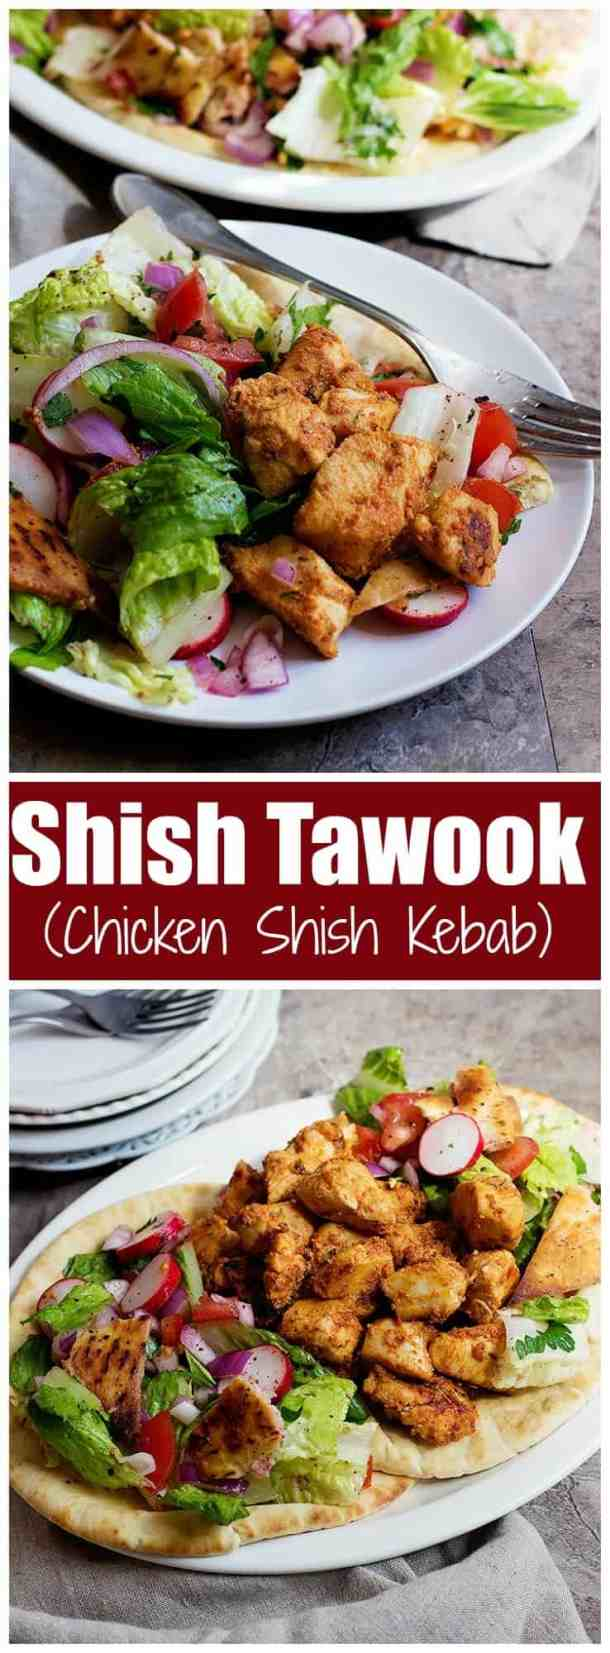 Shish Tawook is a Lebanese chicken kebab that's usually served as a sandwich with some salad. Tender chicken marinated in yogurt, lemon and garlic makes one delicious meal for the family. | Shish Tawook | Shish Taouk | Shish Tawook Recipe | Lebanese Chicken Recipe | Chicken Shish |  Chicken Shish Recipe | Homemade Chicken Kebab | Shish Tawook Marinade | Shish Tawook Recipe Lebanese Chicken | Shish Tawook Sandwich | Middle Eastern recipes | Mediterranean Recipes | UnicornsintheKitchen.com